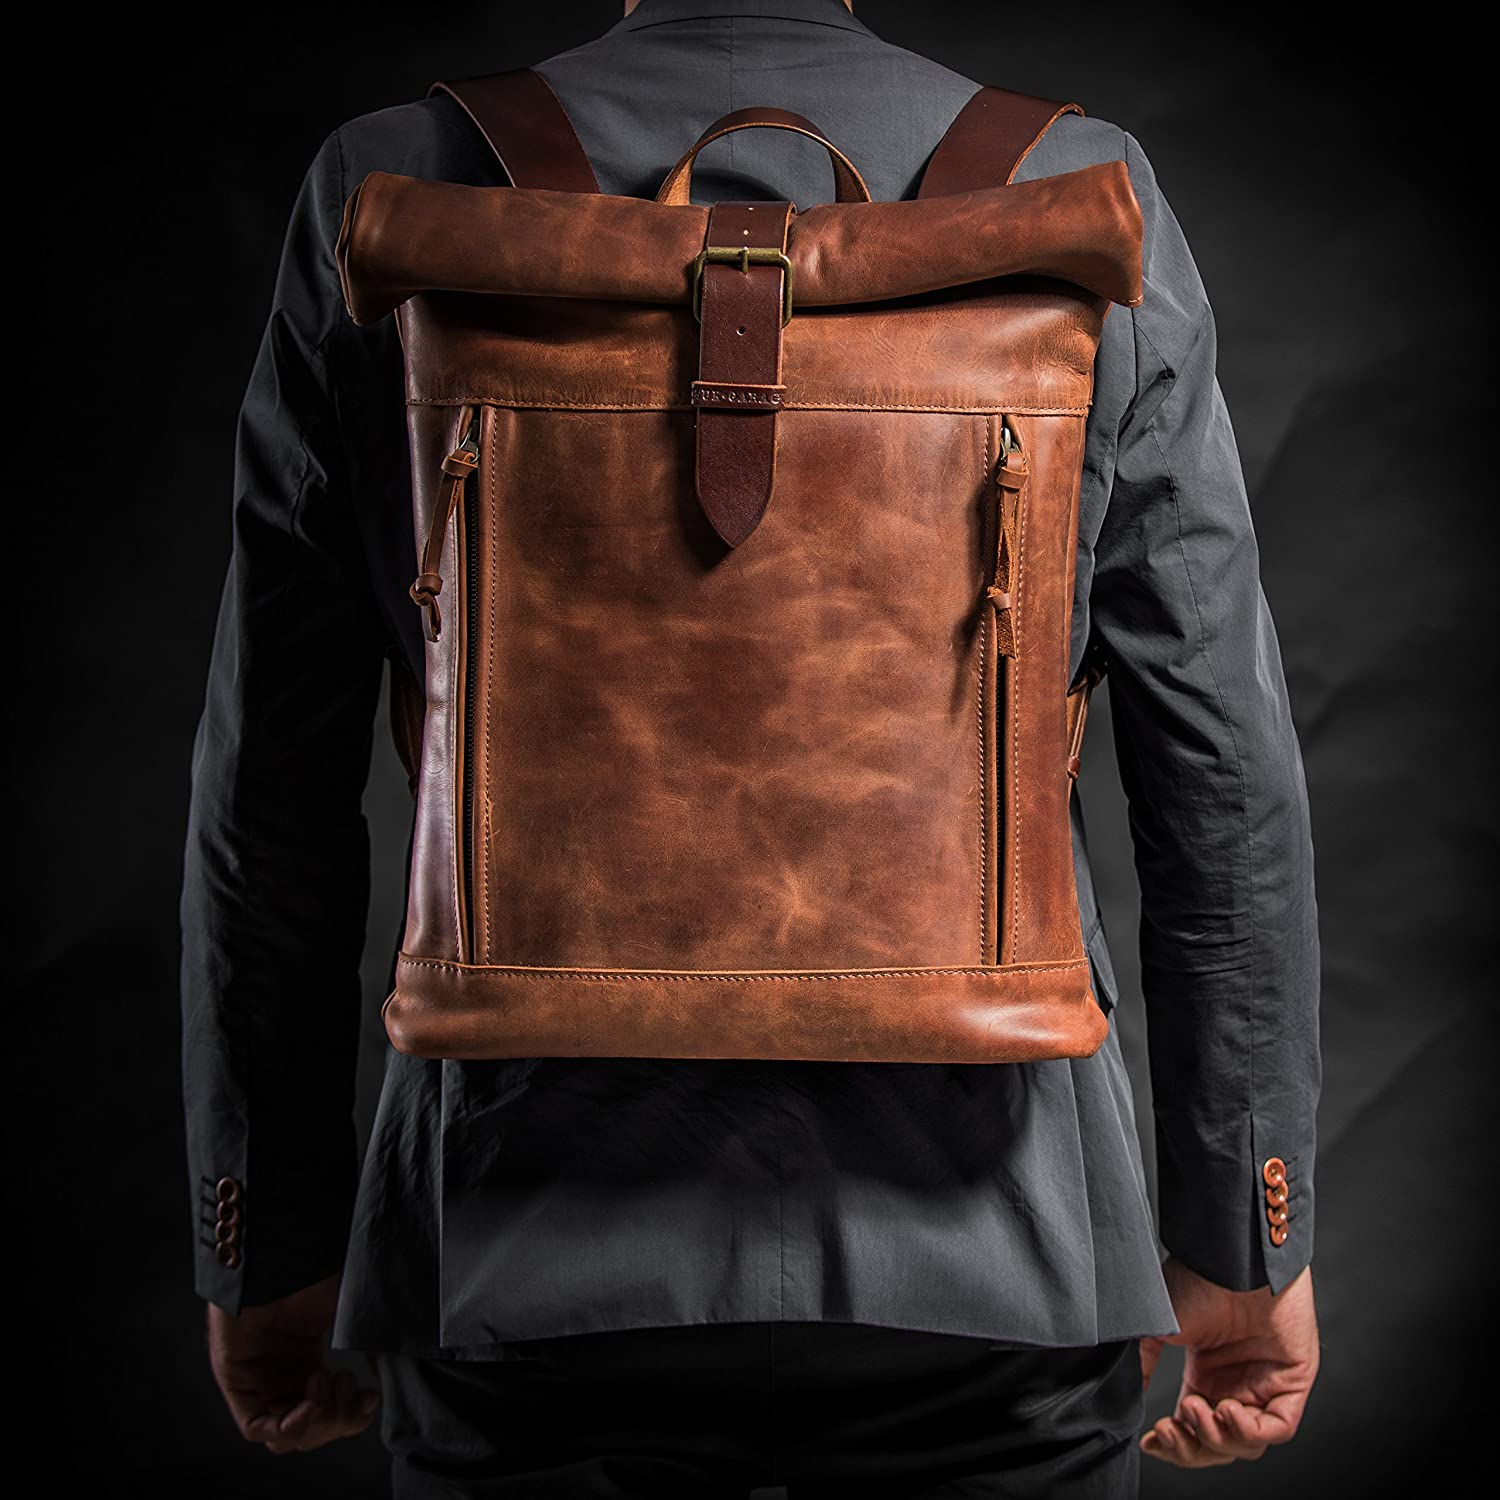 e7a95db45e81 ... Leather backpack Roll top backpack by Kruk Garage Cognac brown leather  backpack Mens backpack Leather rucksack ...